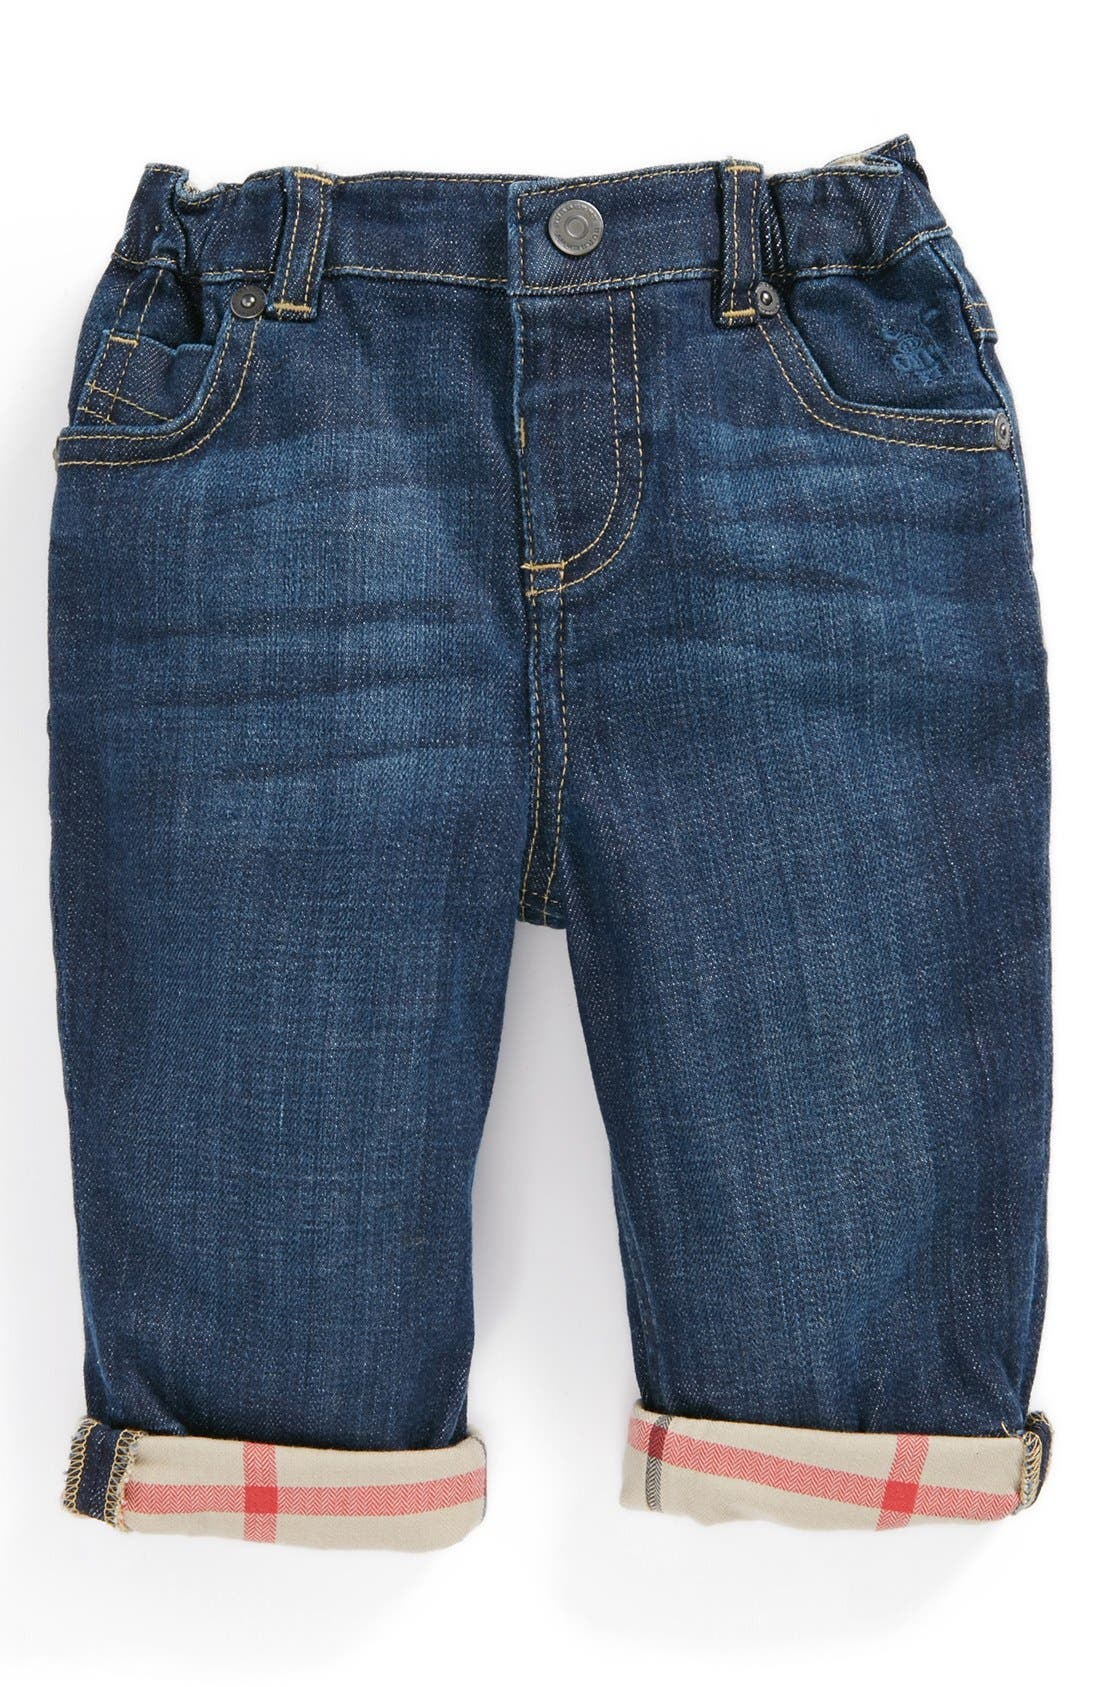 Alternate Image 1 Selected - Burberry Check Lined Jeans (Baby Boys)